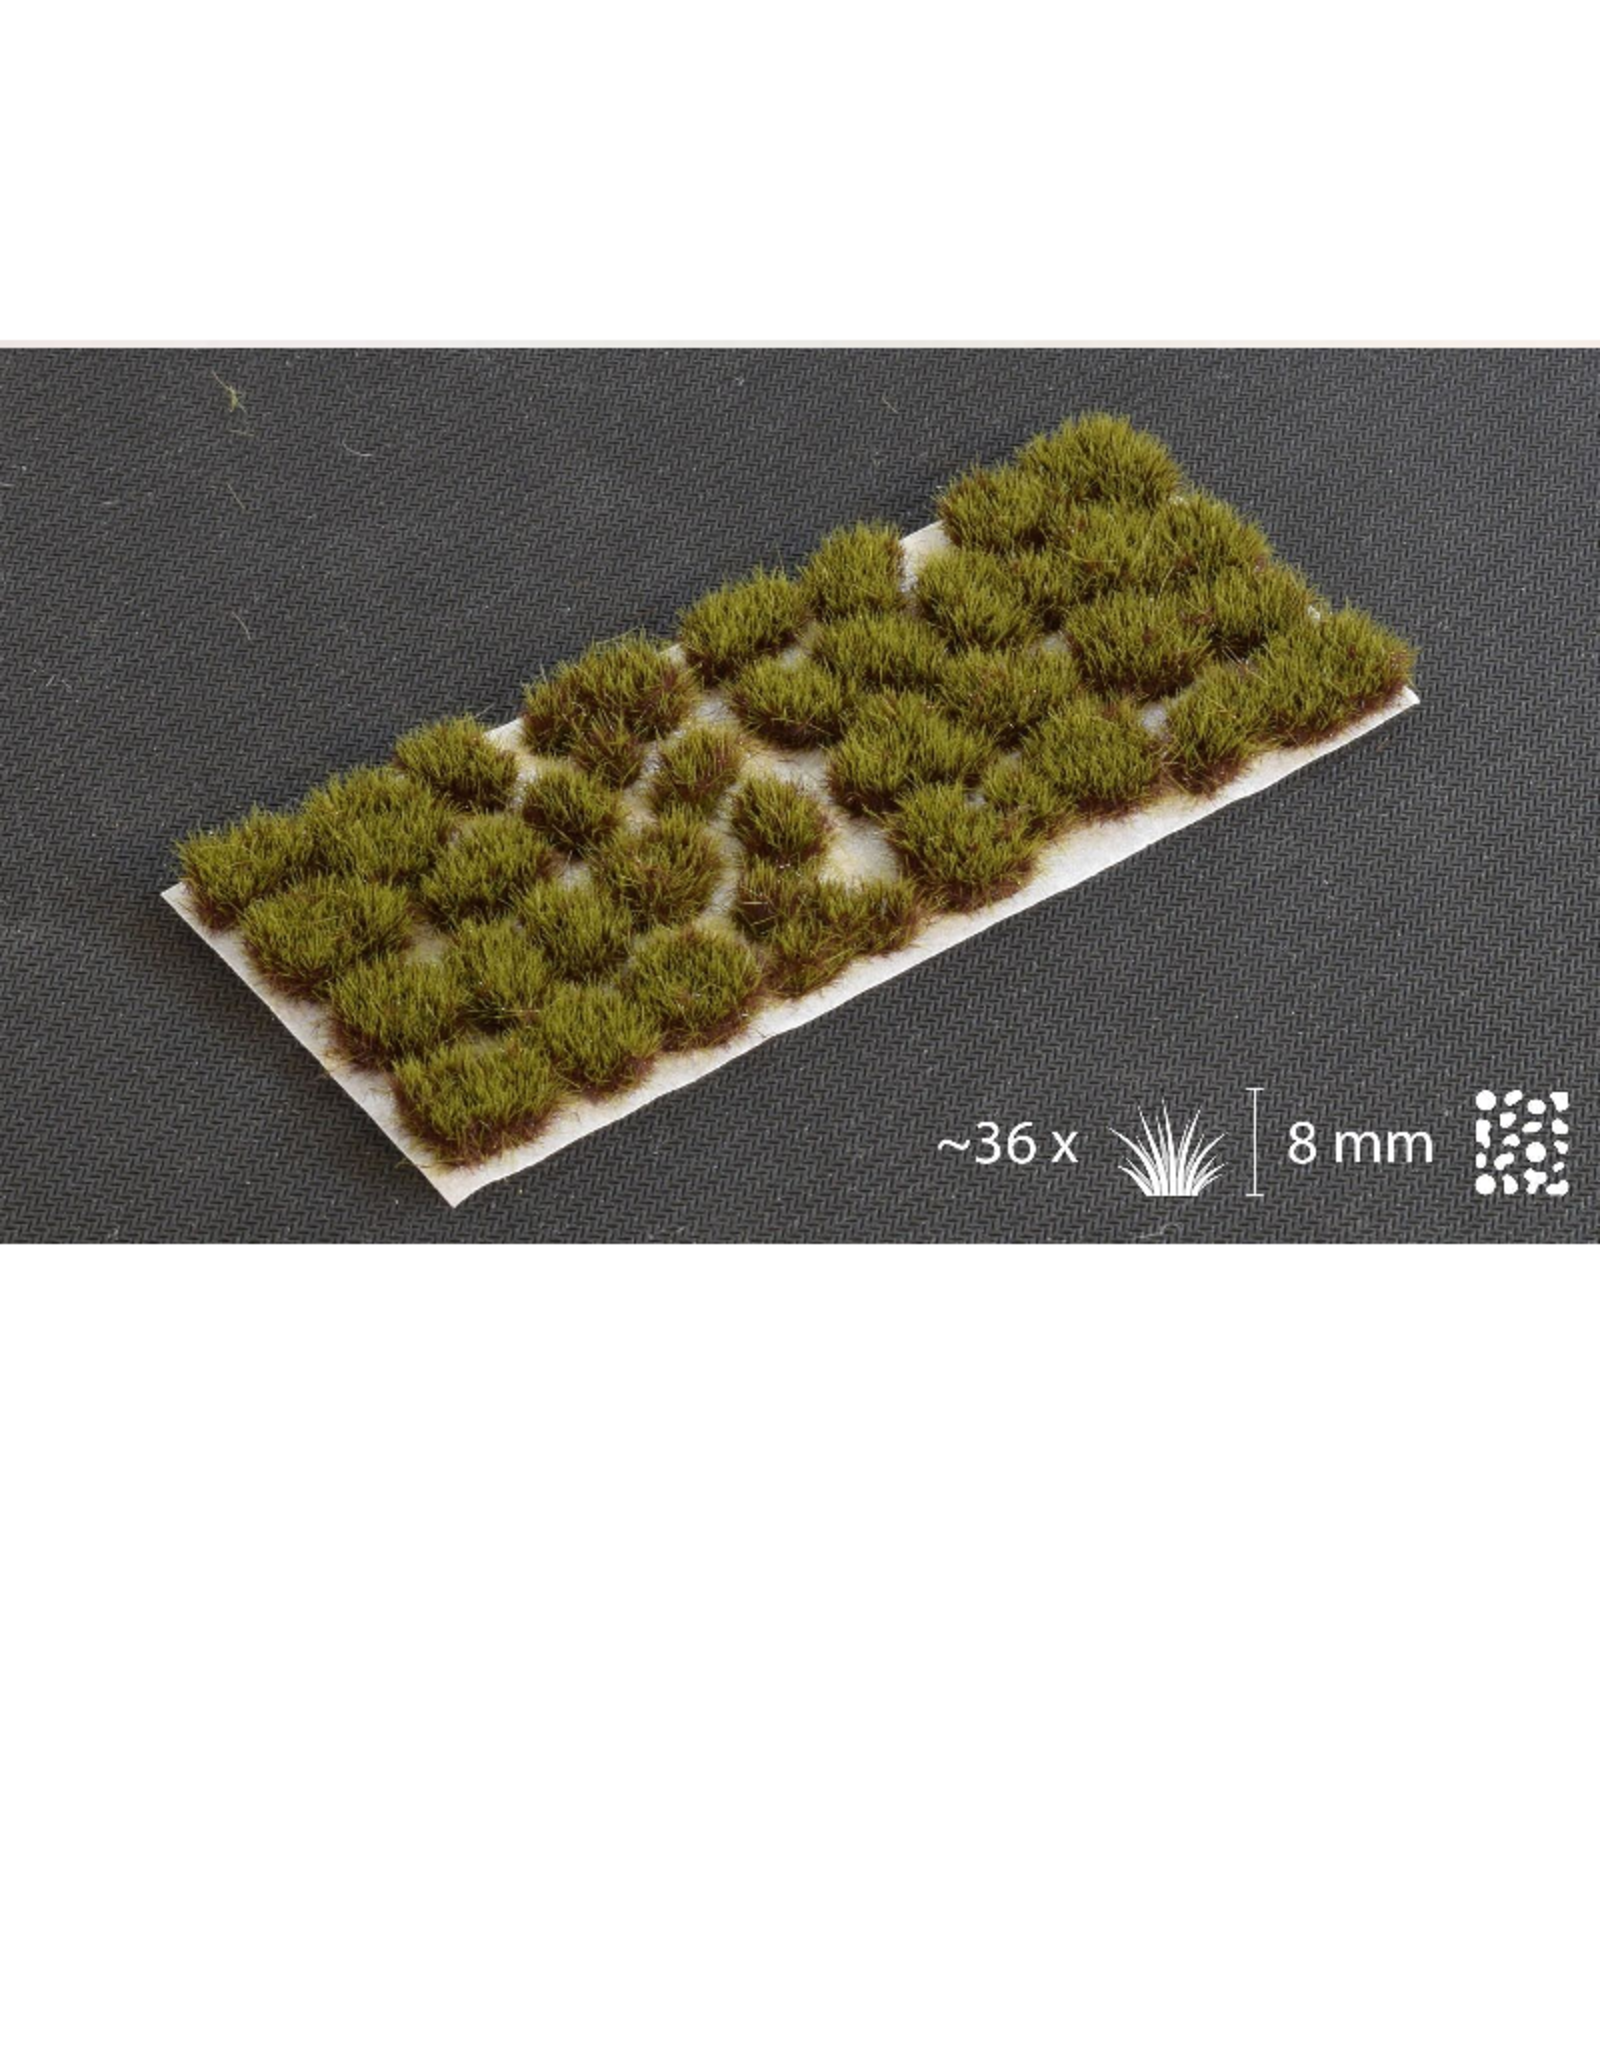 Gamers' Grass Swamp Tufts (8mm, XL)